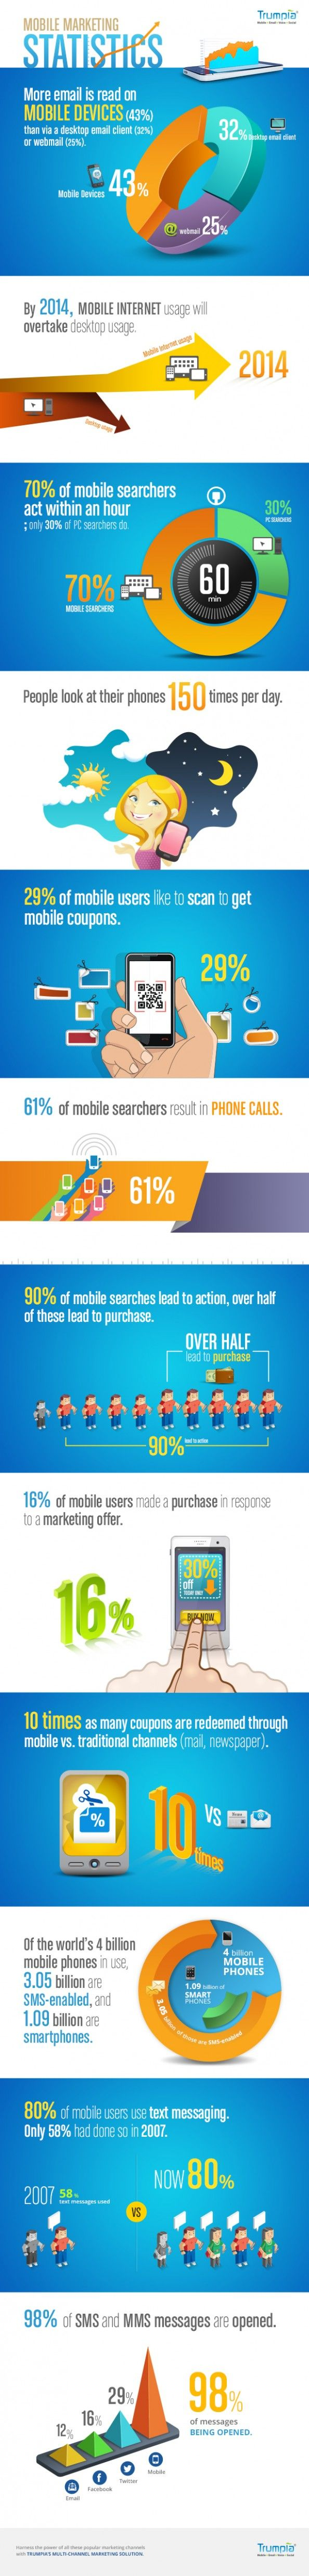 Mobile Marketing Statistics  #Infographic. Smile Savvy, dental internet marketing @ www.smilesavvy.com #SmileSavvyInc #dental-internet-marketing